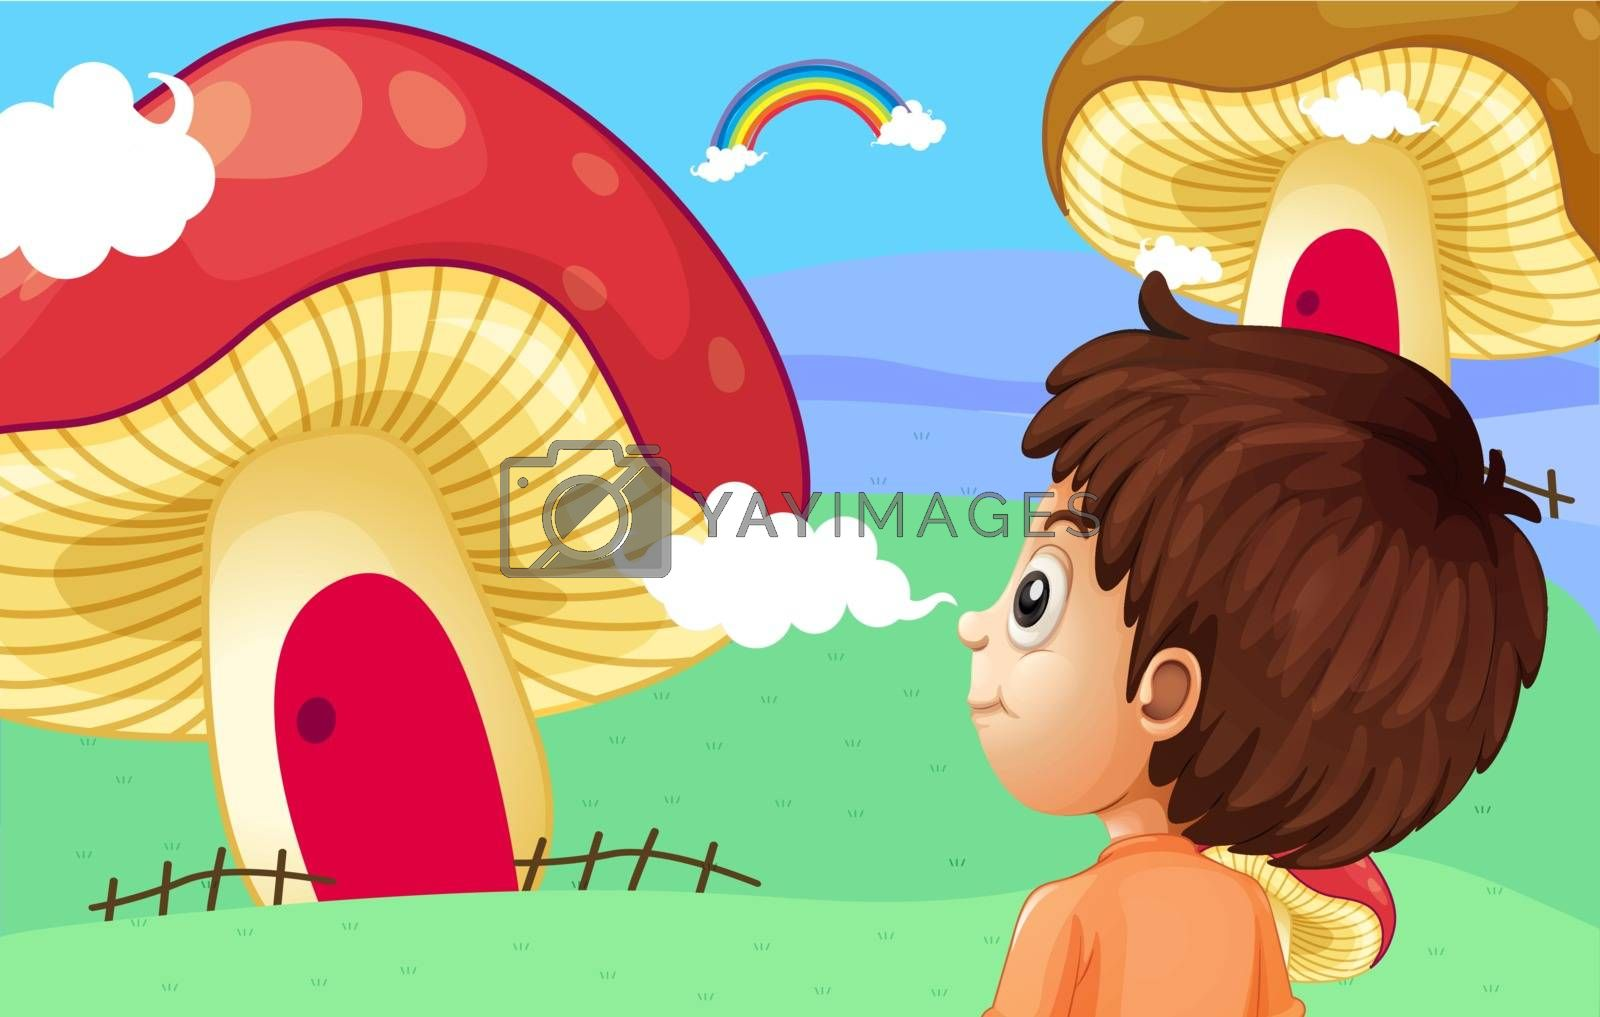 Illustration of a young boy watching the giant mushroom houses